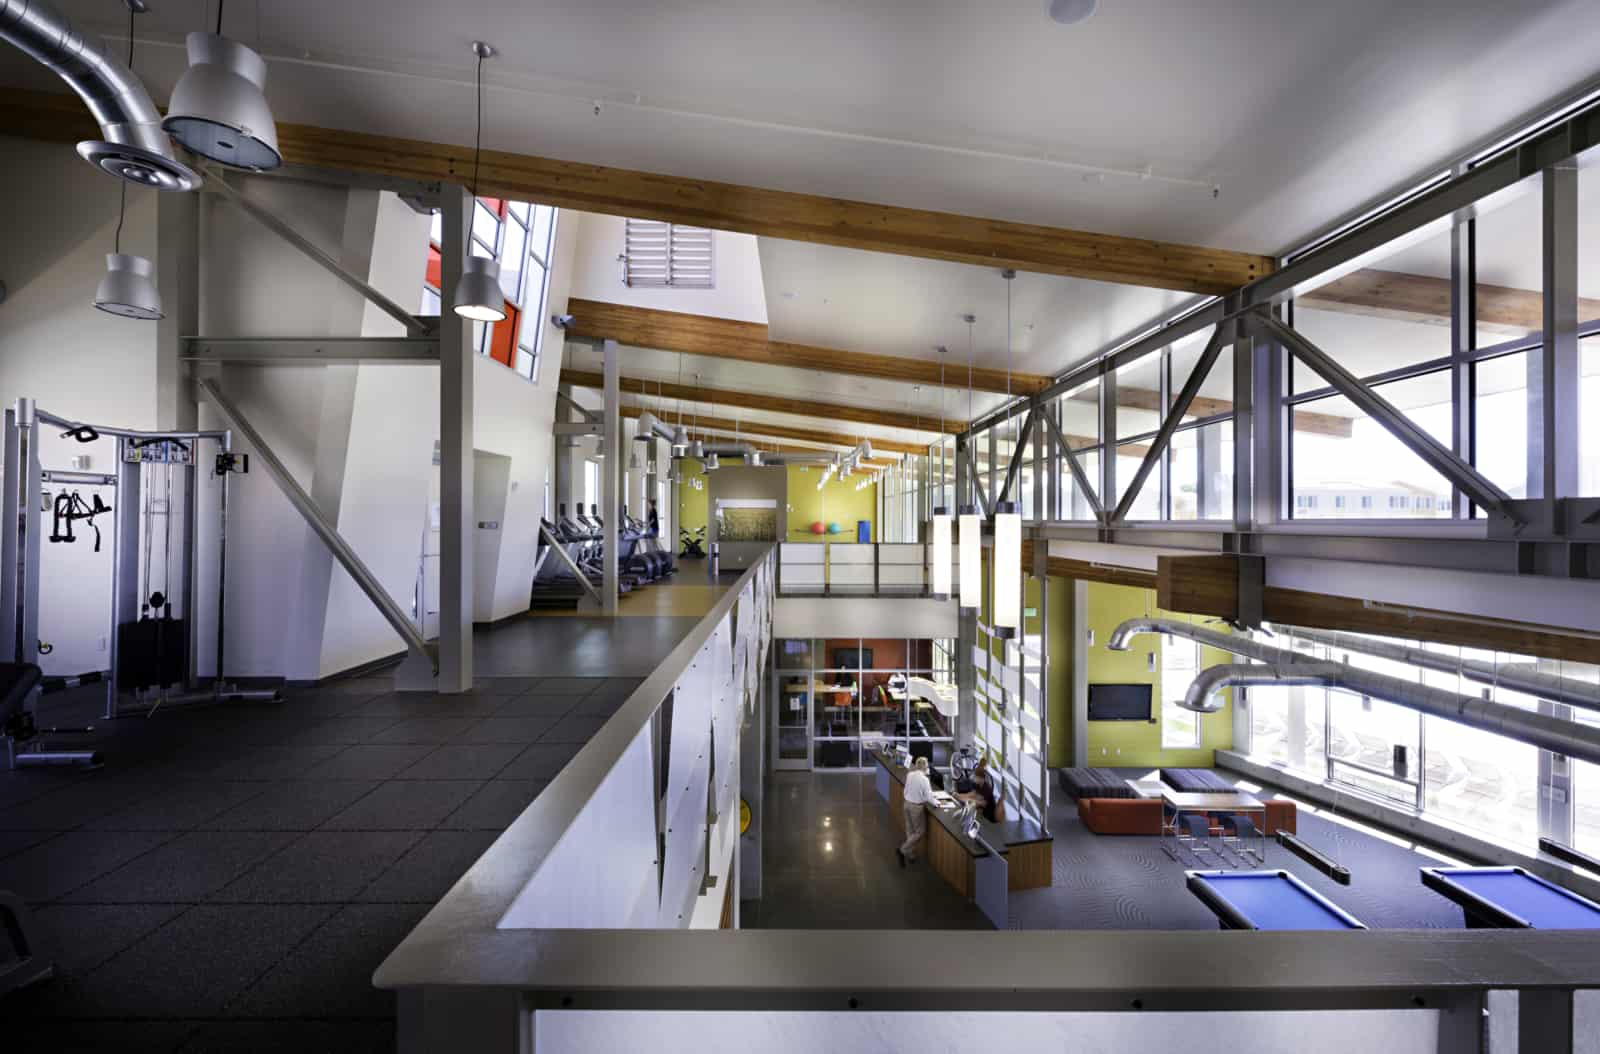 View of the second floor fitness center that's open to a common area below.